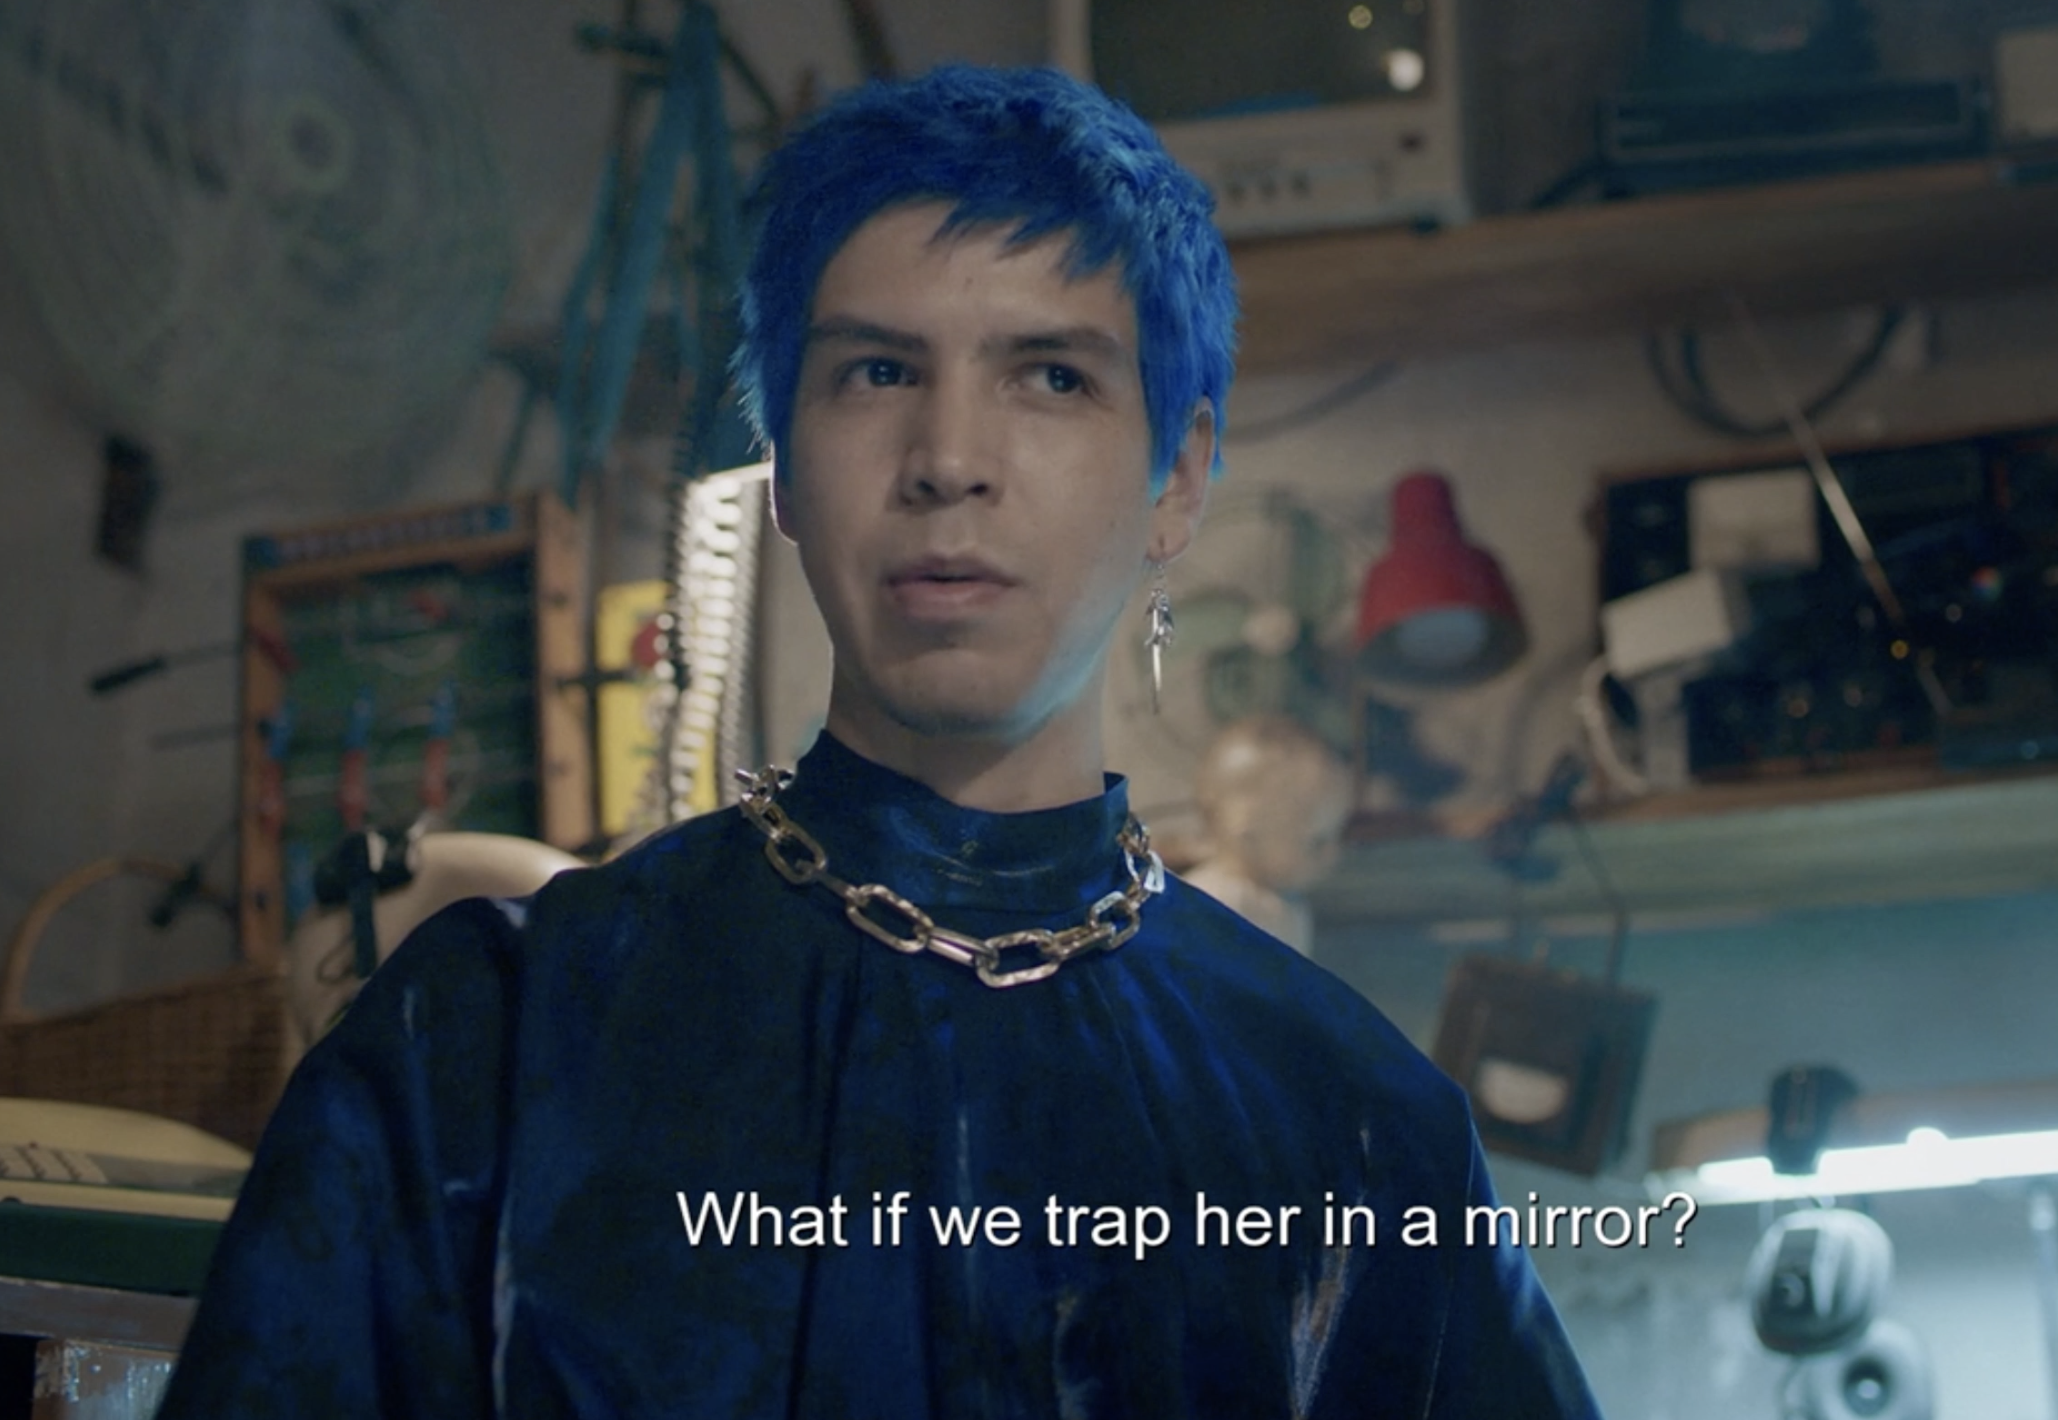 Andres in the blue long-sleeve shirt and chainlink choker